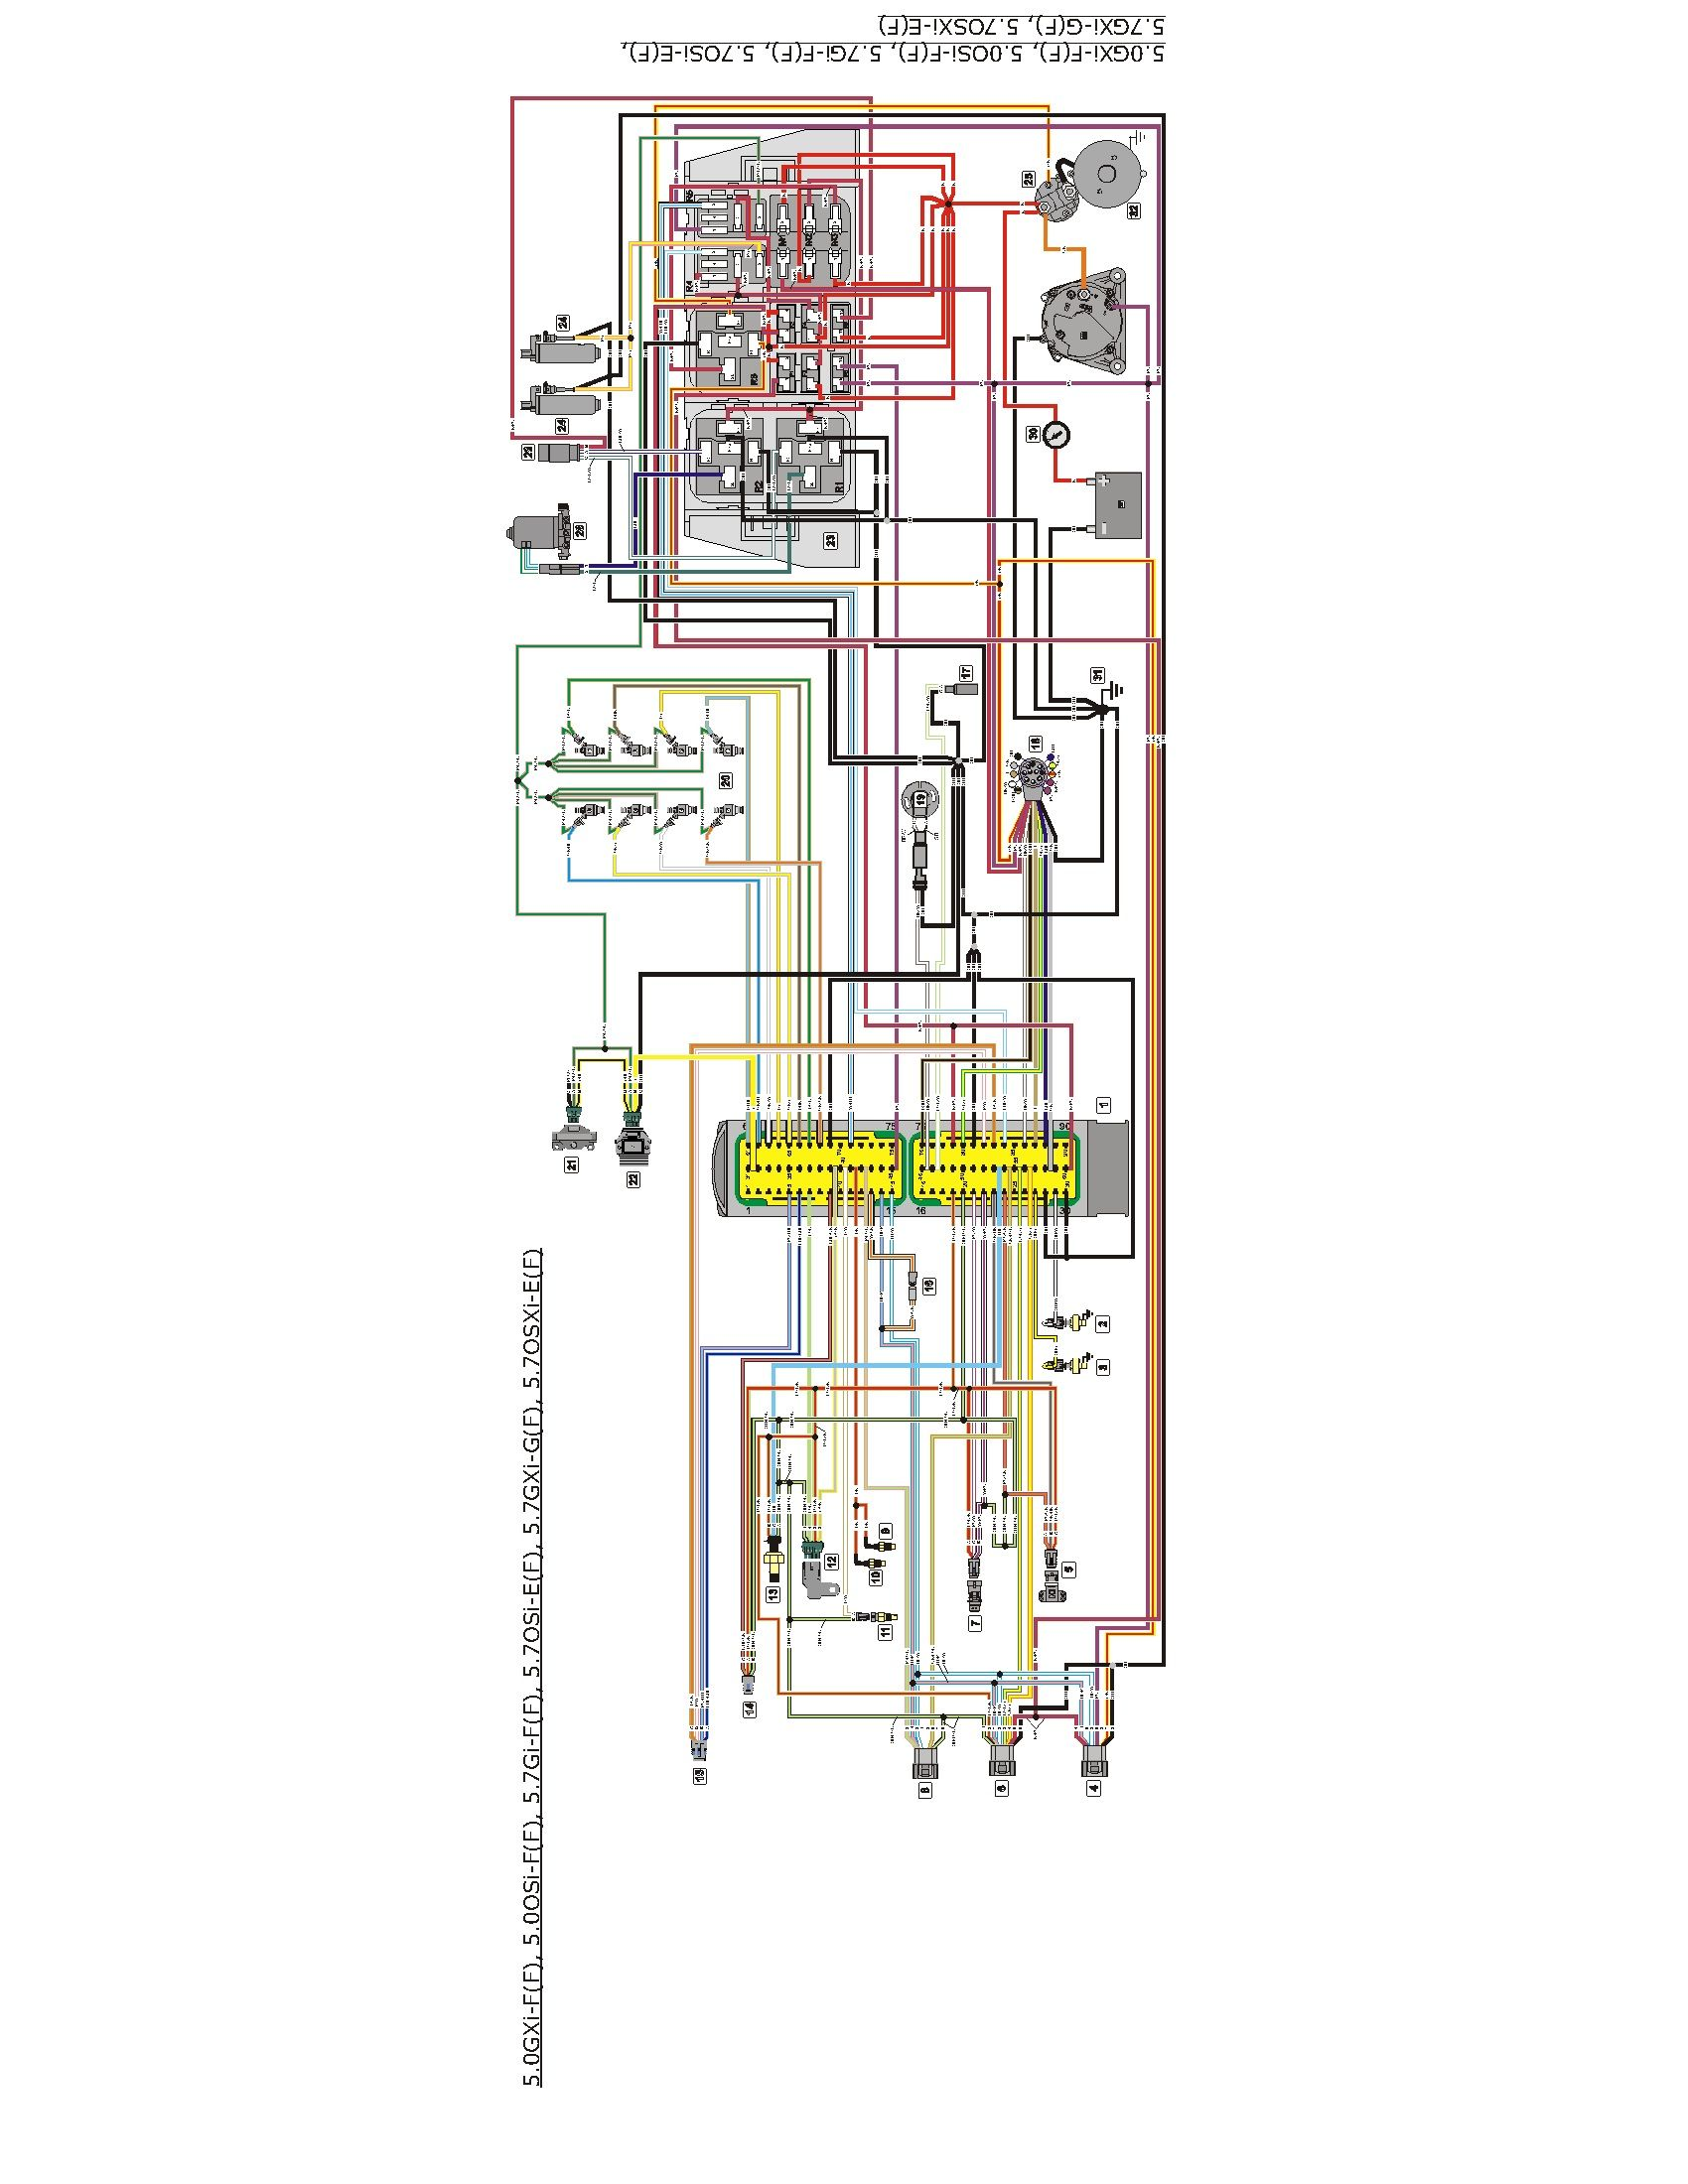 Volvo Penta 57 Engine Wiring Diagram Boat Pinterest Volvo and